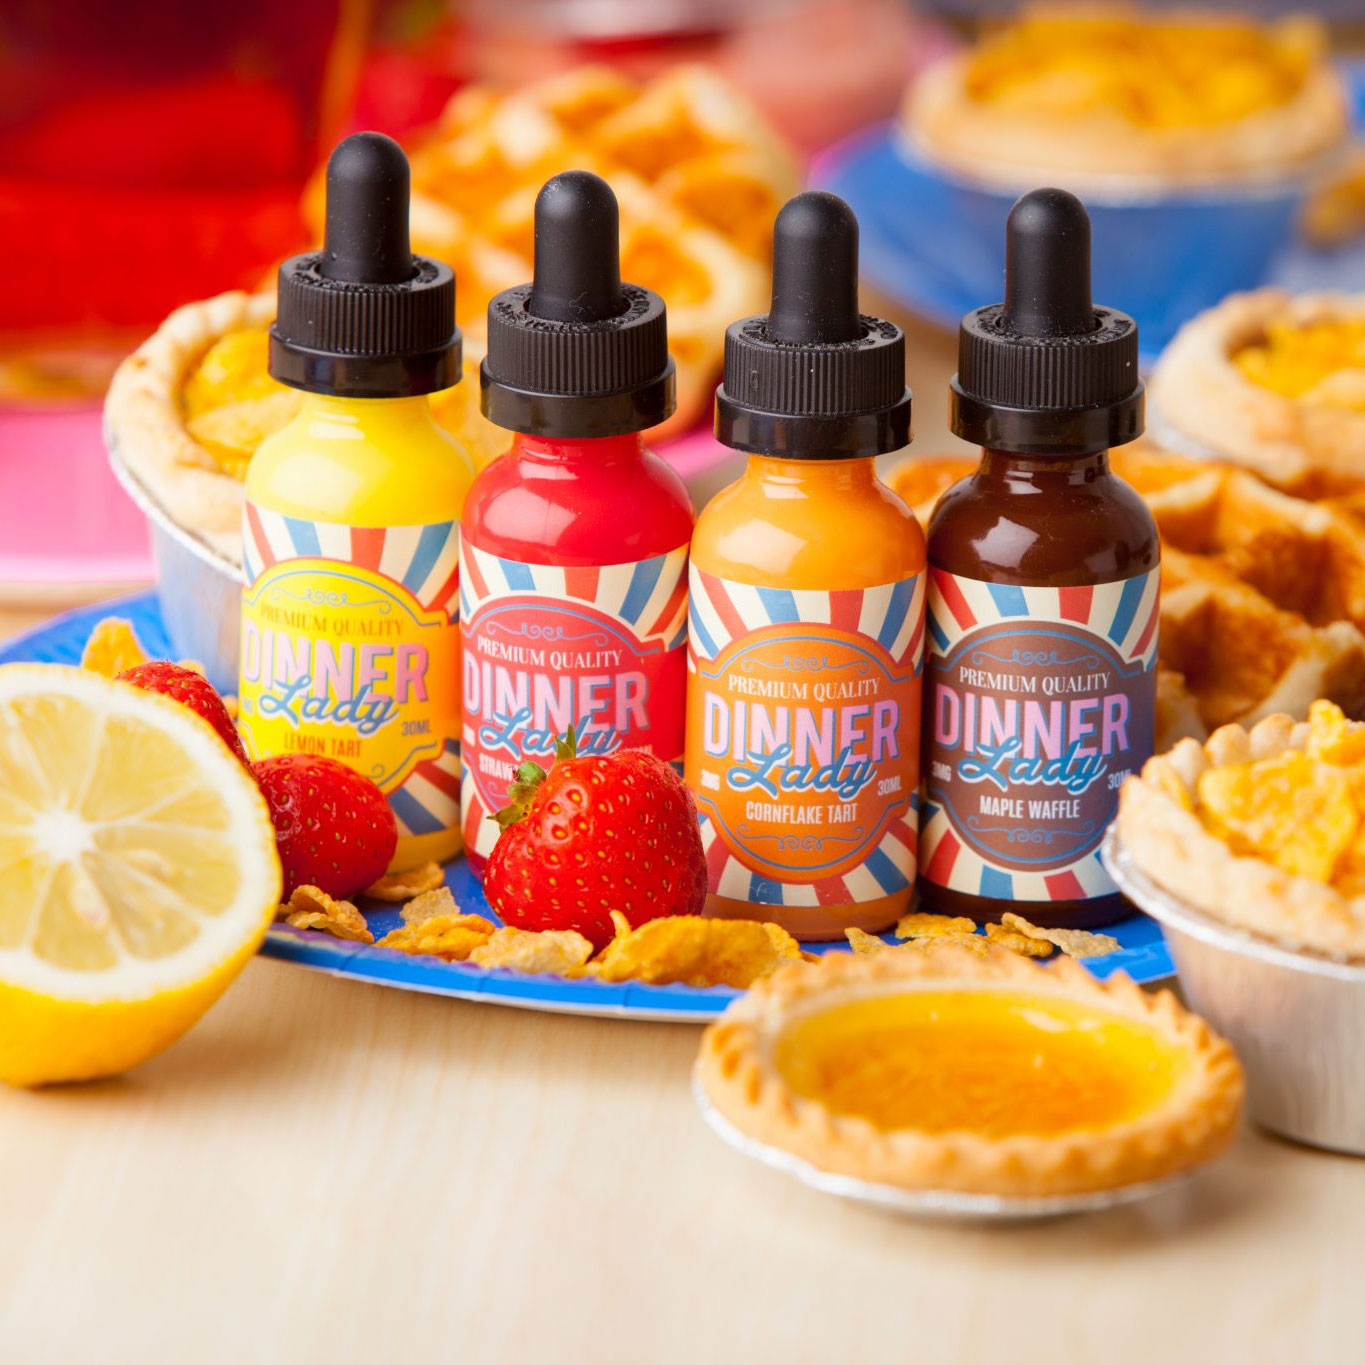 Review of 3 New Dinner Lady Flavors